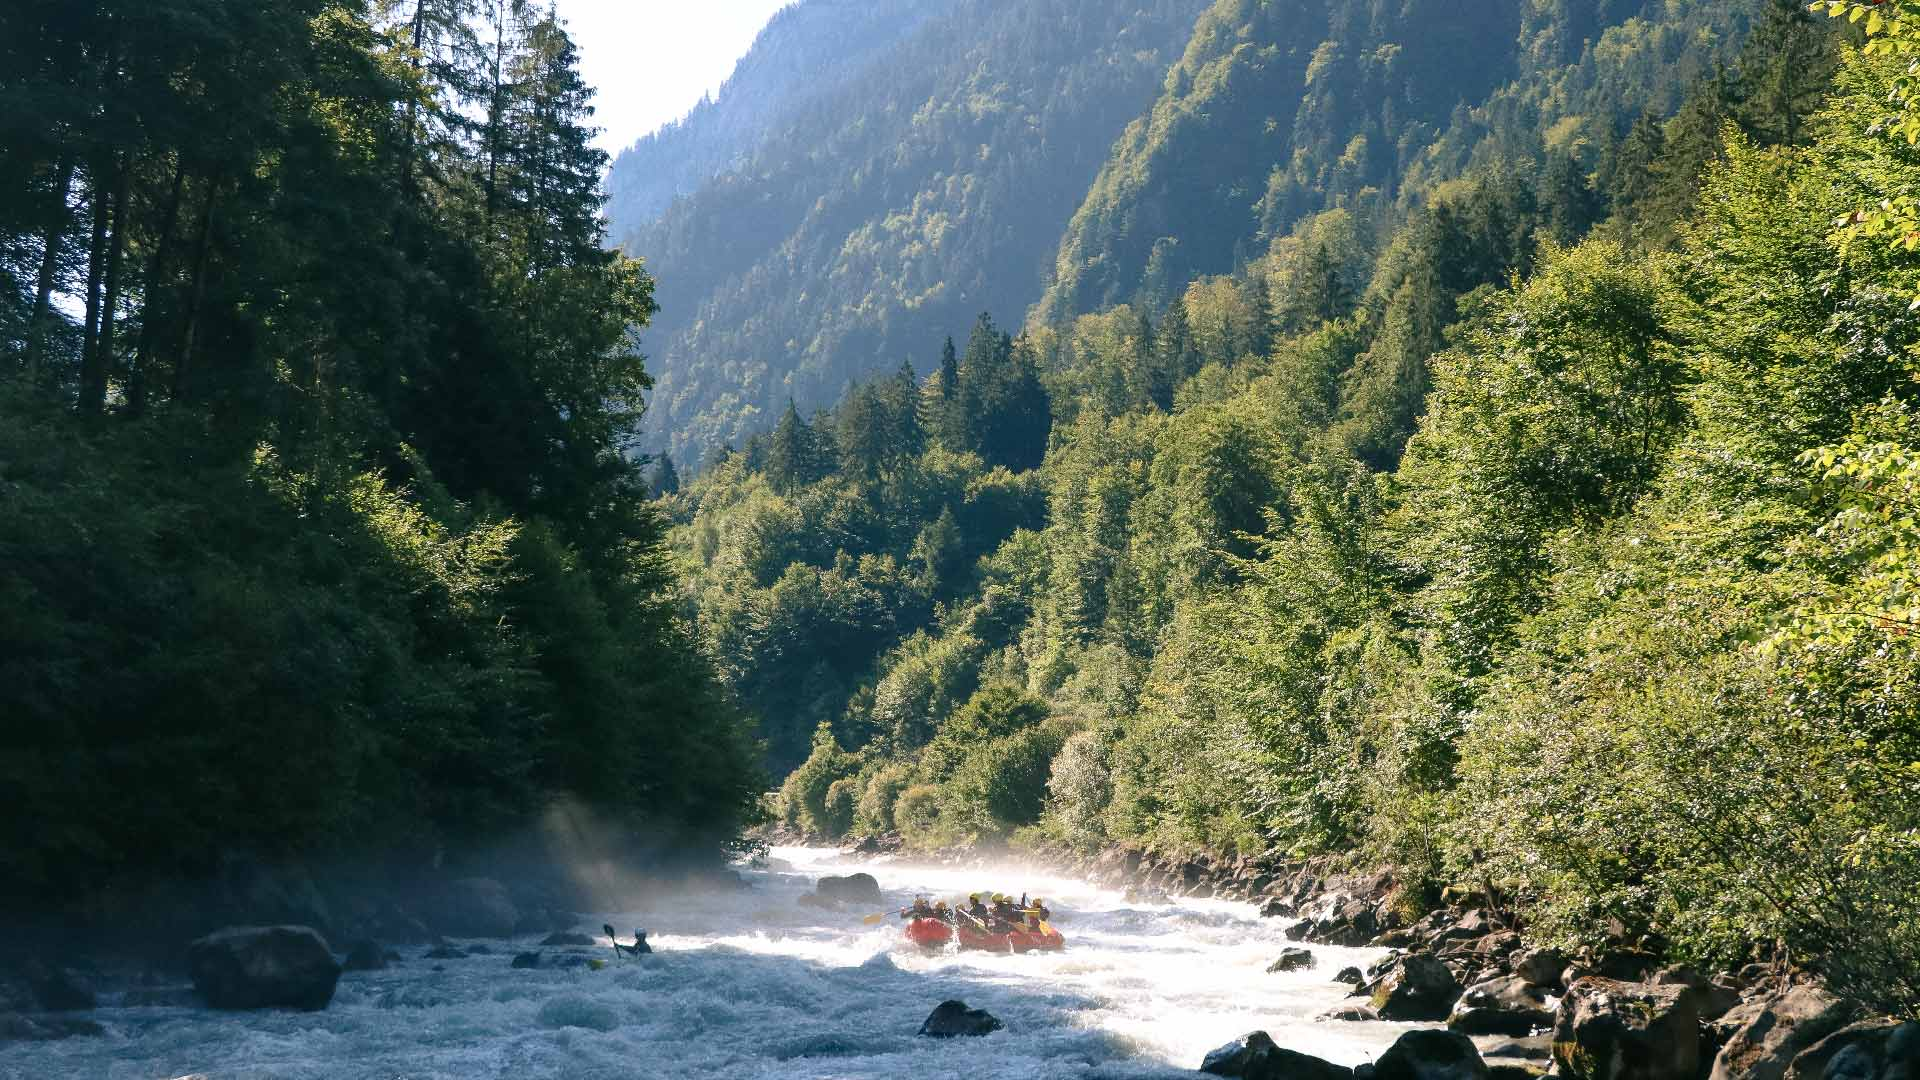 river-rafting-sommer-boote-adventure-wasser